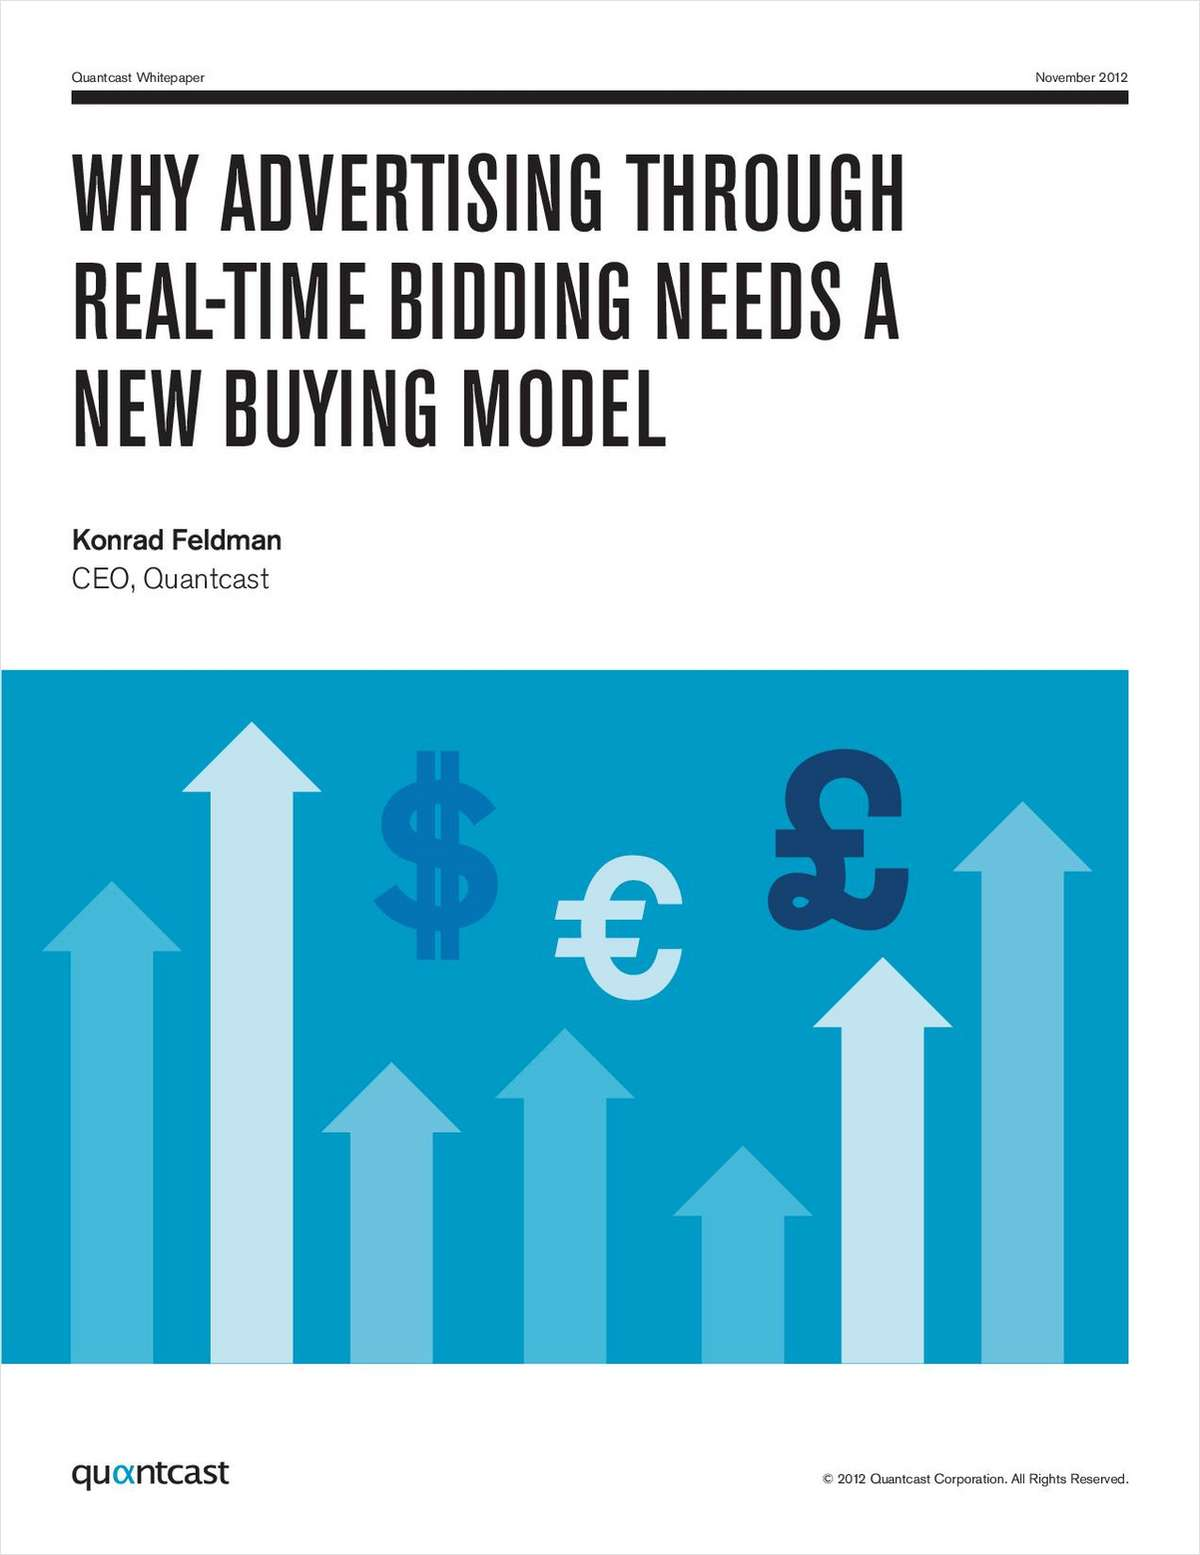 Why Advertising Through Real-Time Bidding Needs a New Buying Model